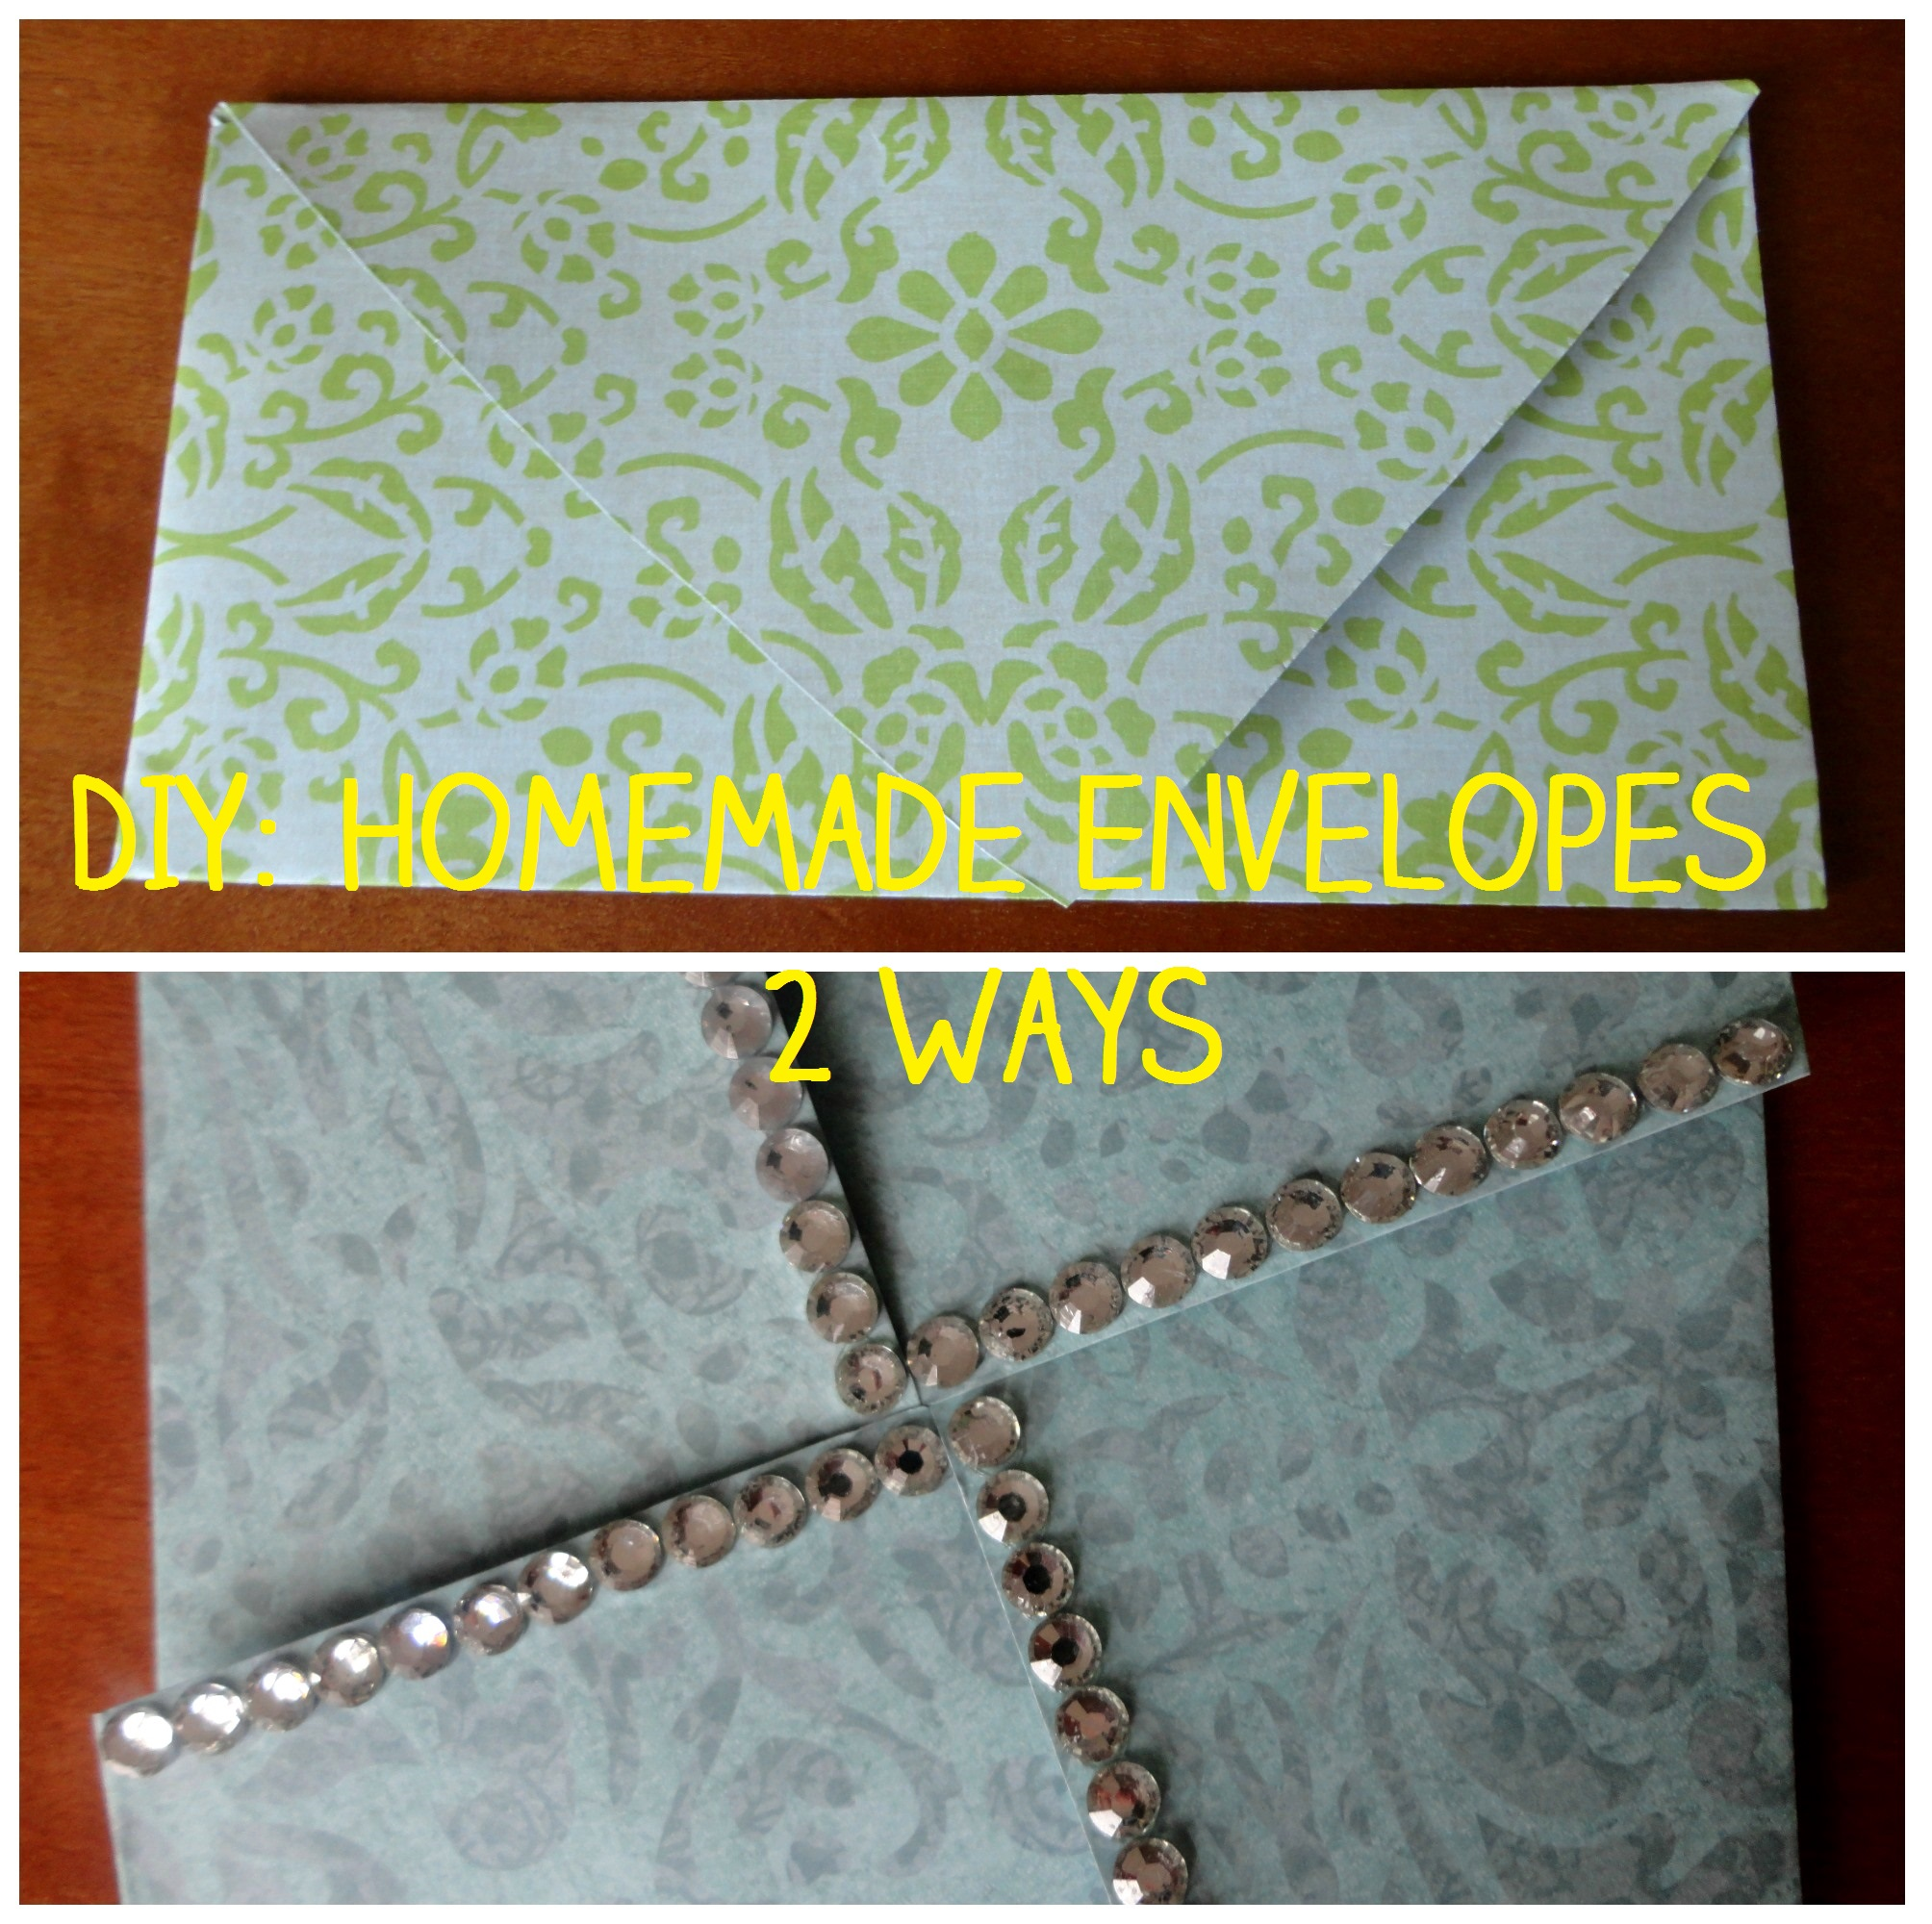 DIY: Homemade Envelopes 2 Ways